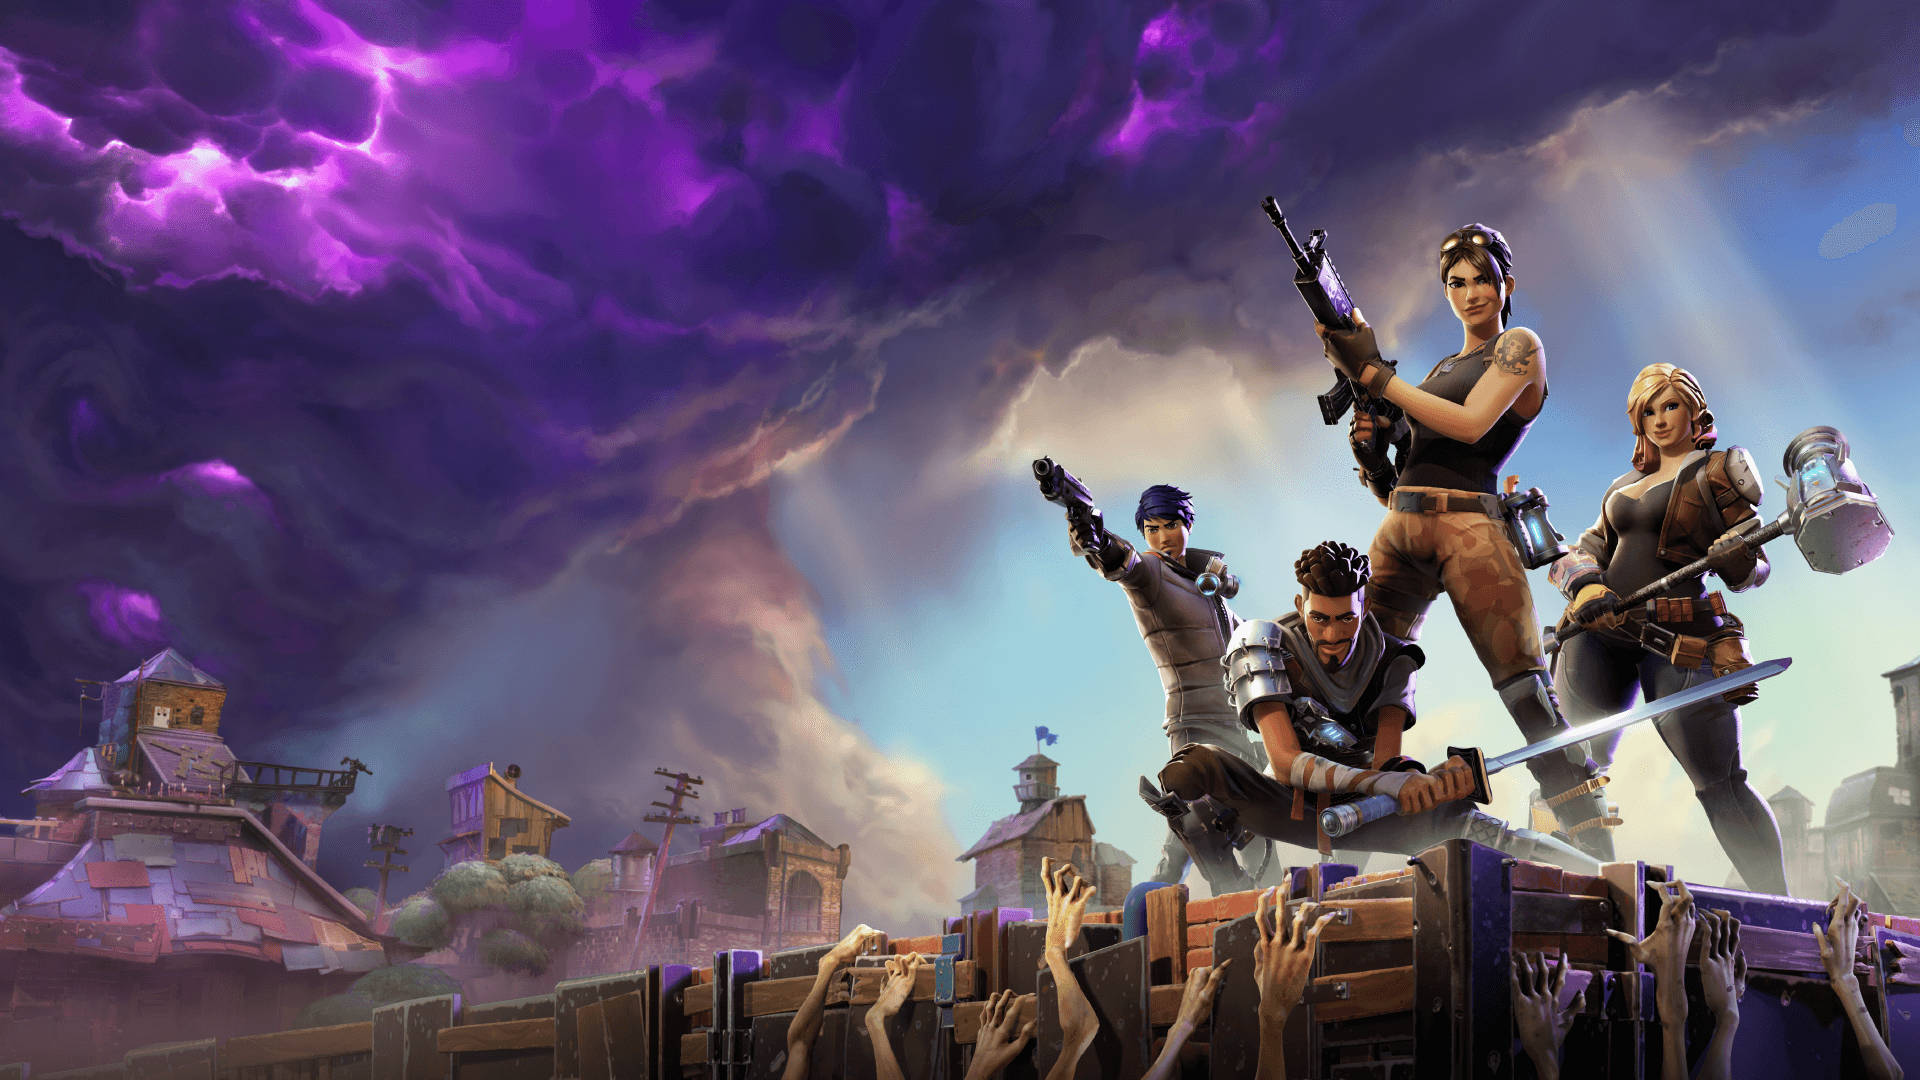 Fortnite: Save the World Loot Llama Purchasers to Receive 1000 V-Bucks